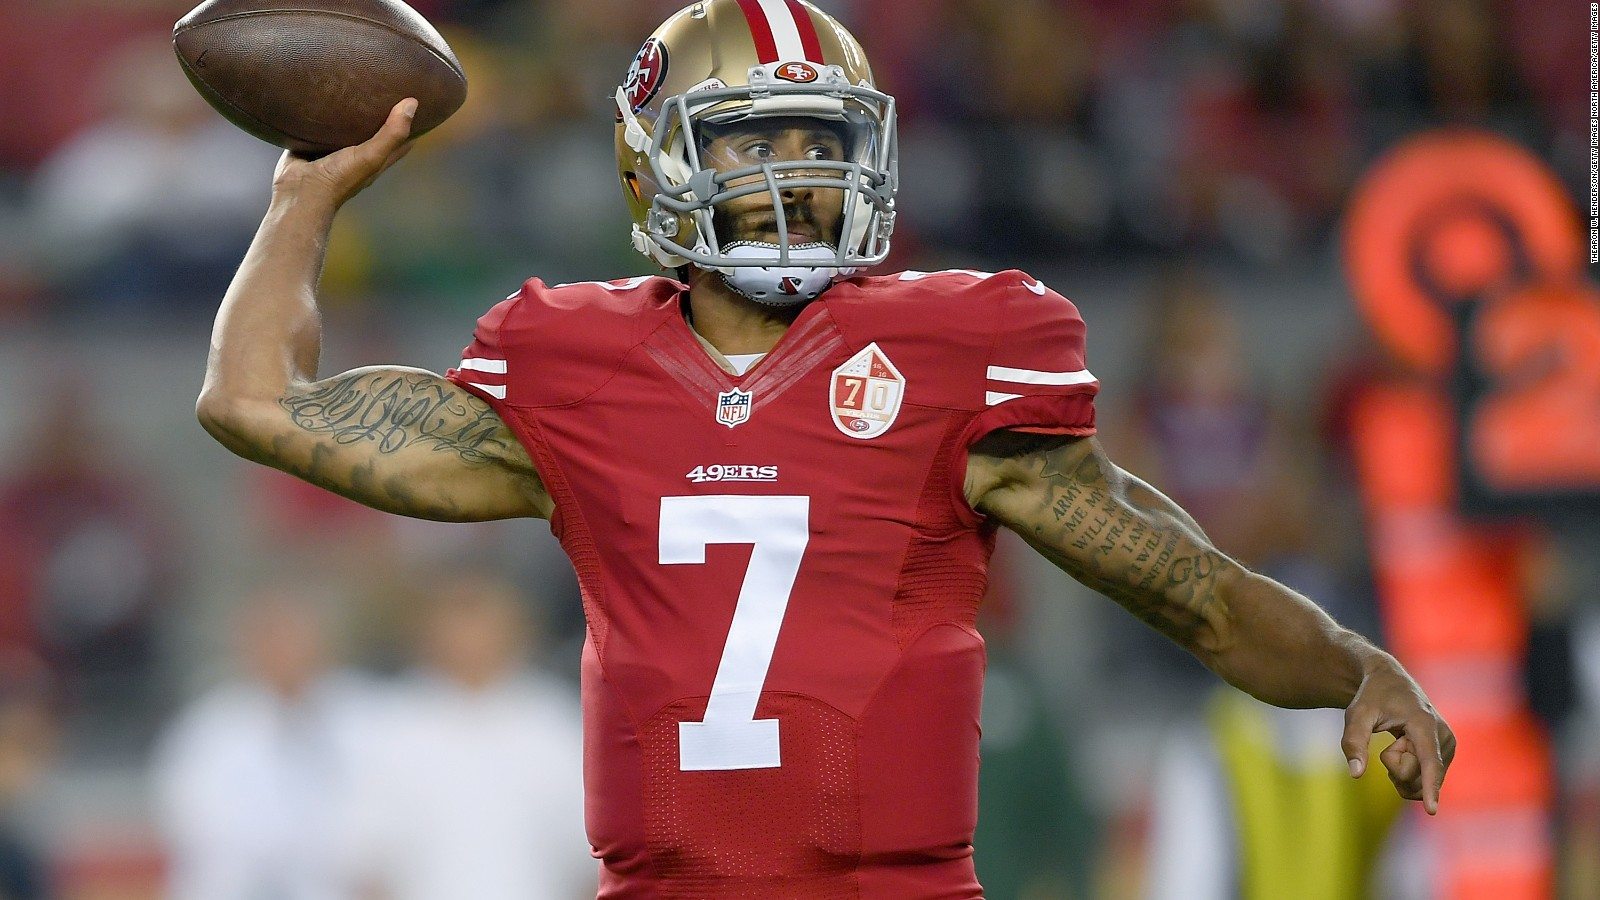 NFL Star Colin Kaepernick Sits In Protest During National Anthem